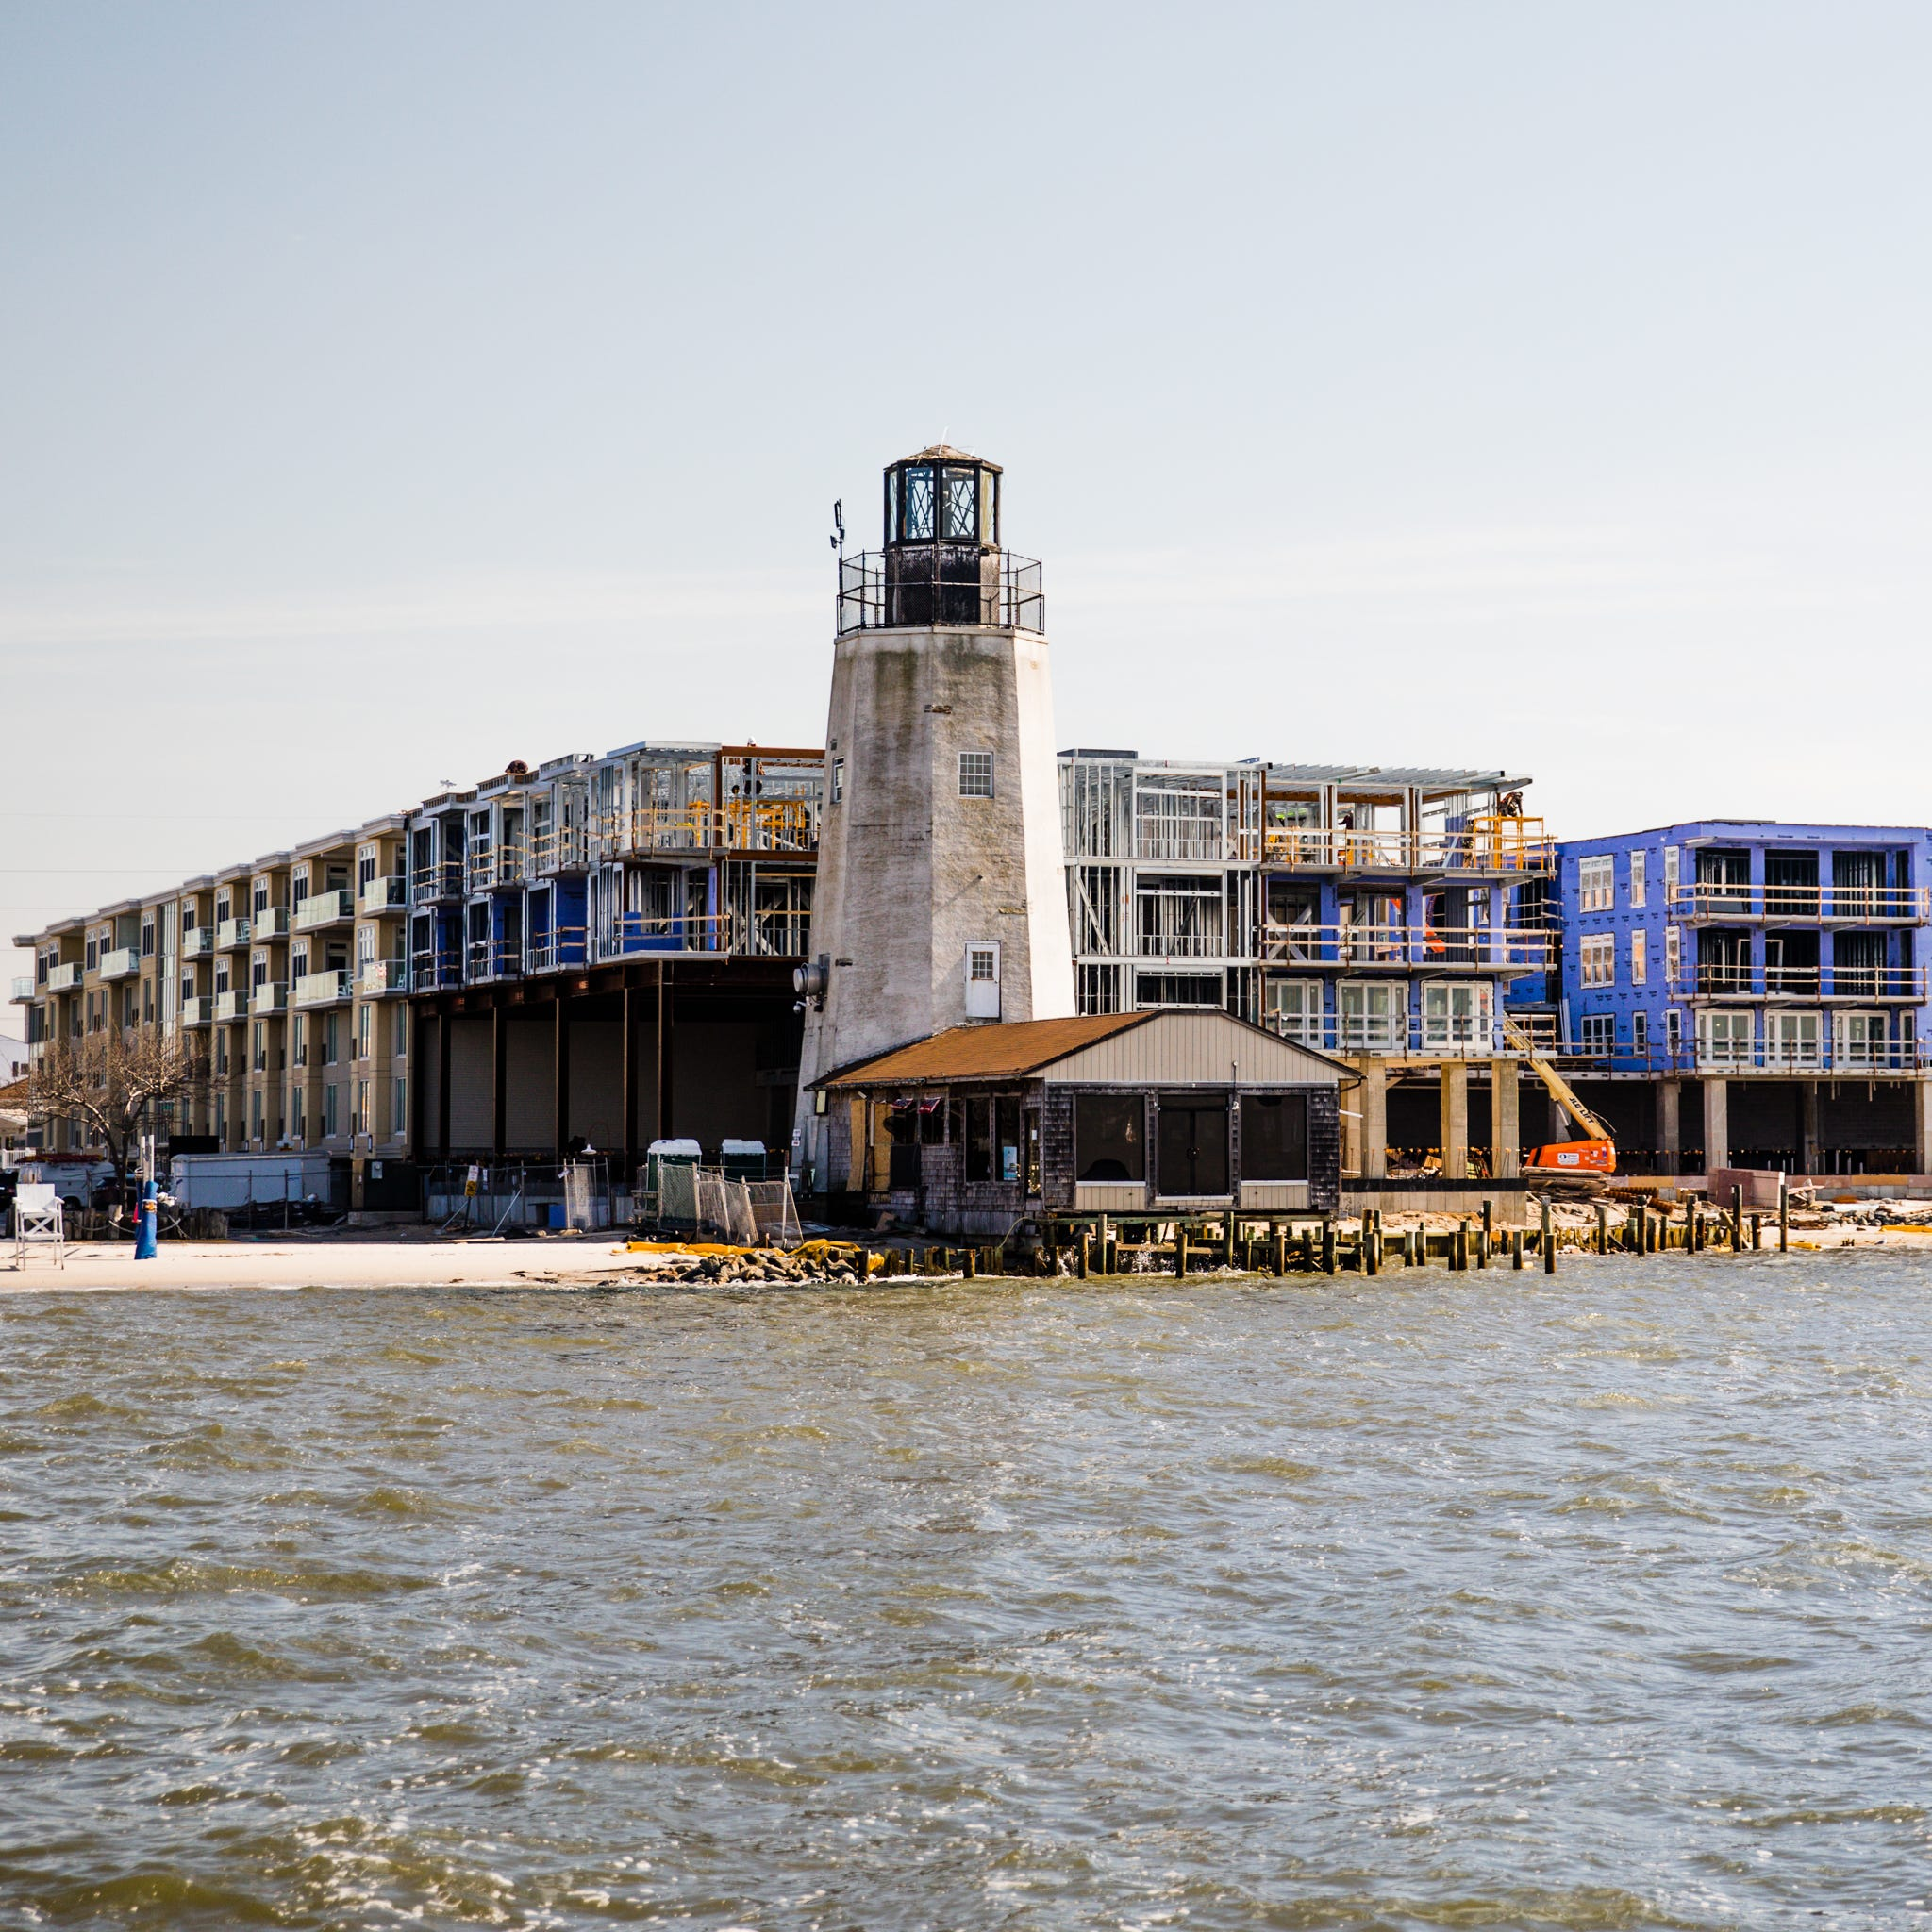 Lighthouse restaurant in Dewey Beach to be demolished and replaced, developers announce